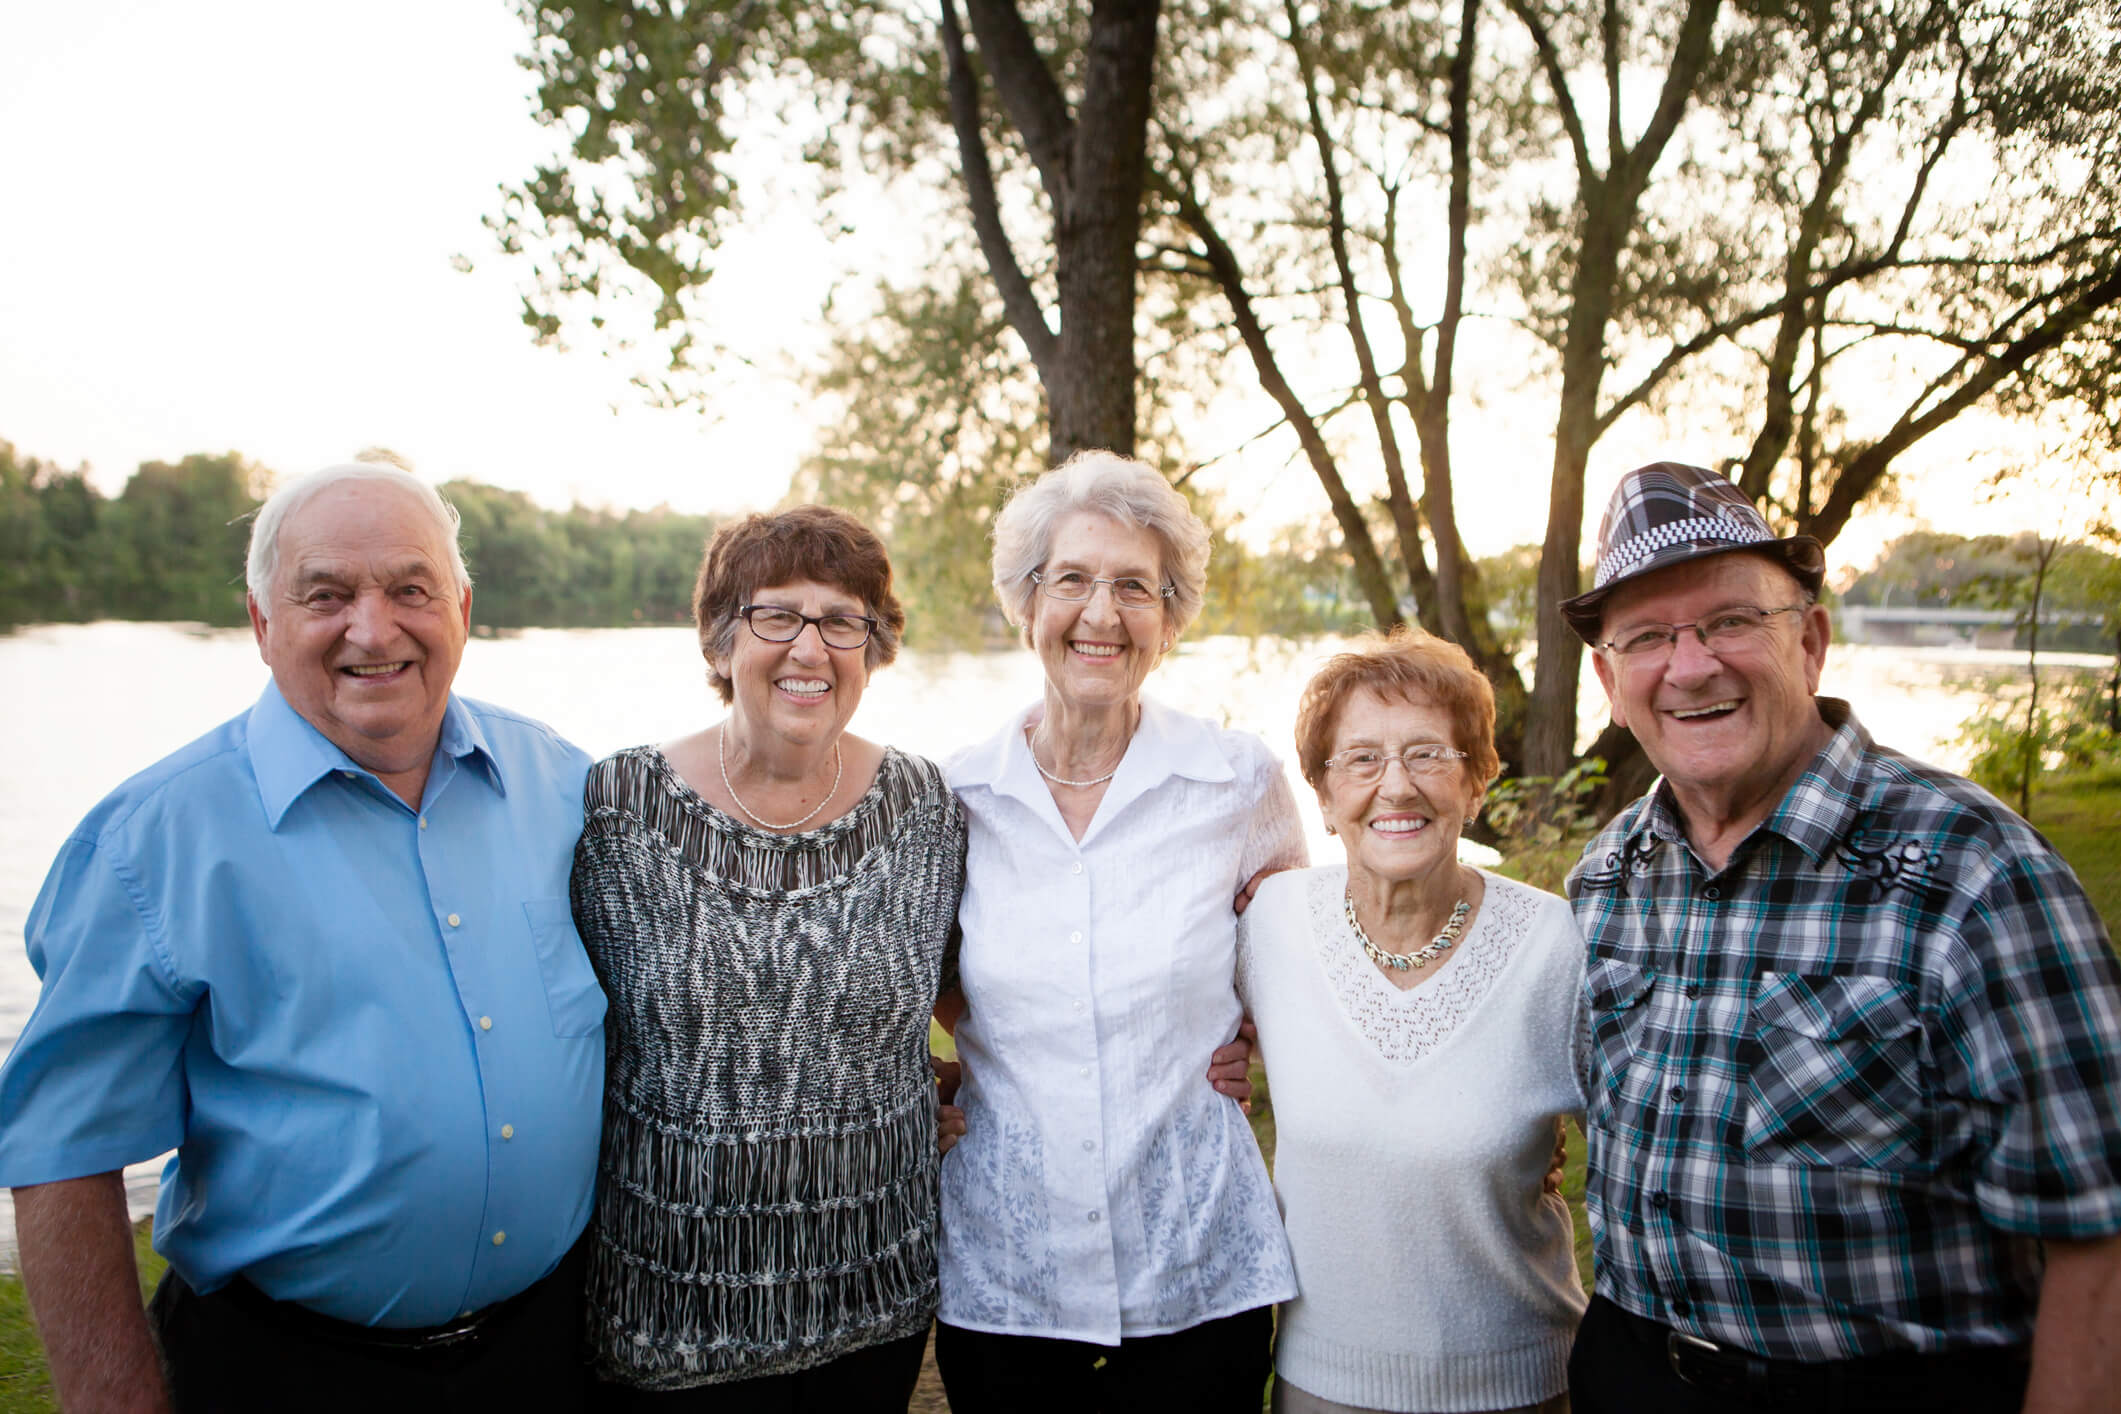 Questions to Ask When Considering a Senior Living Community